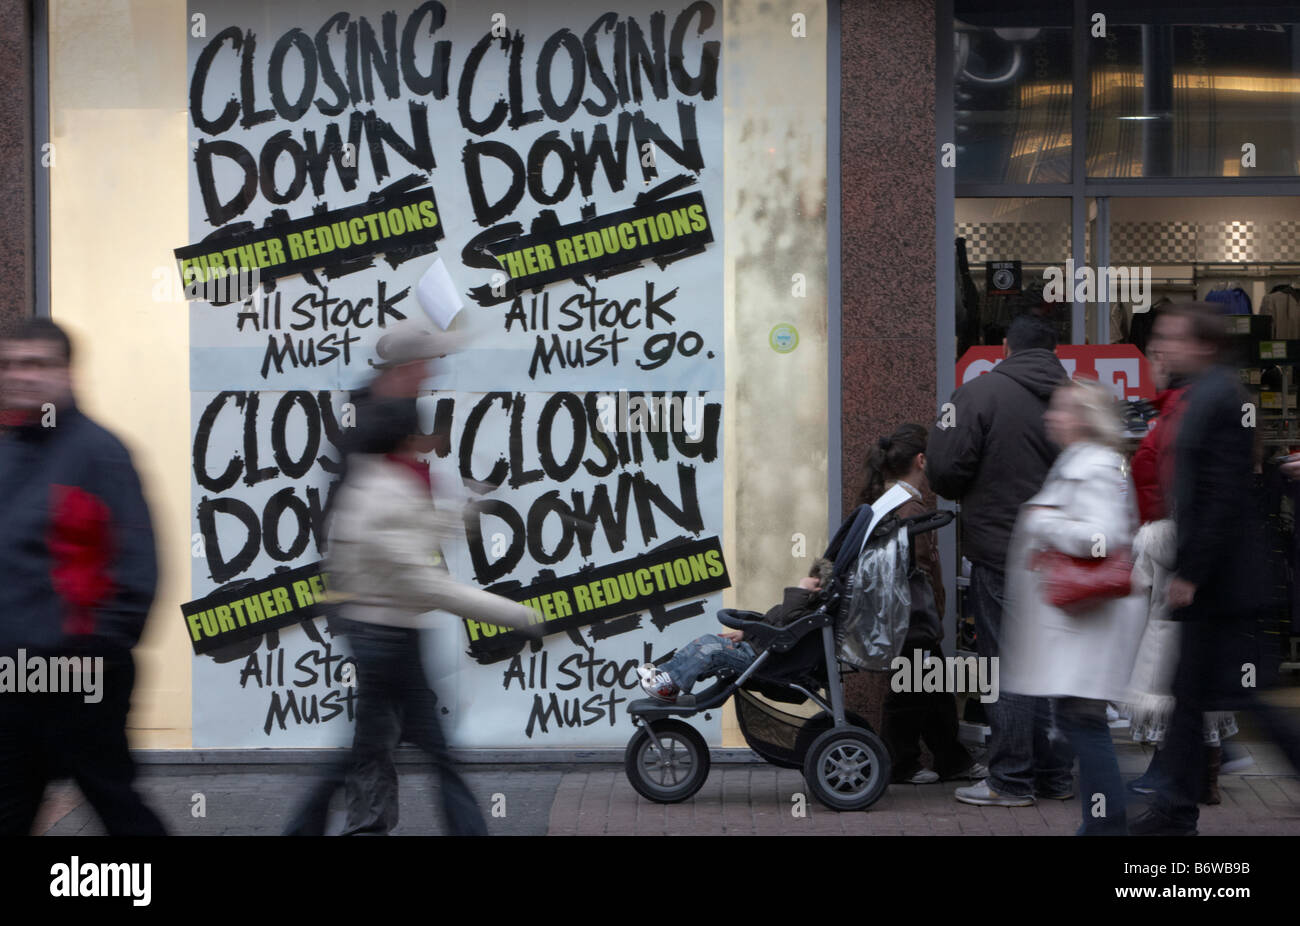 shoppers and families walking past closing down sale signs in a shop window in the uk - Stock Image